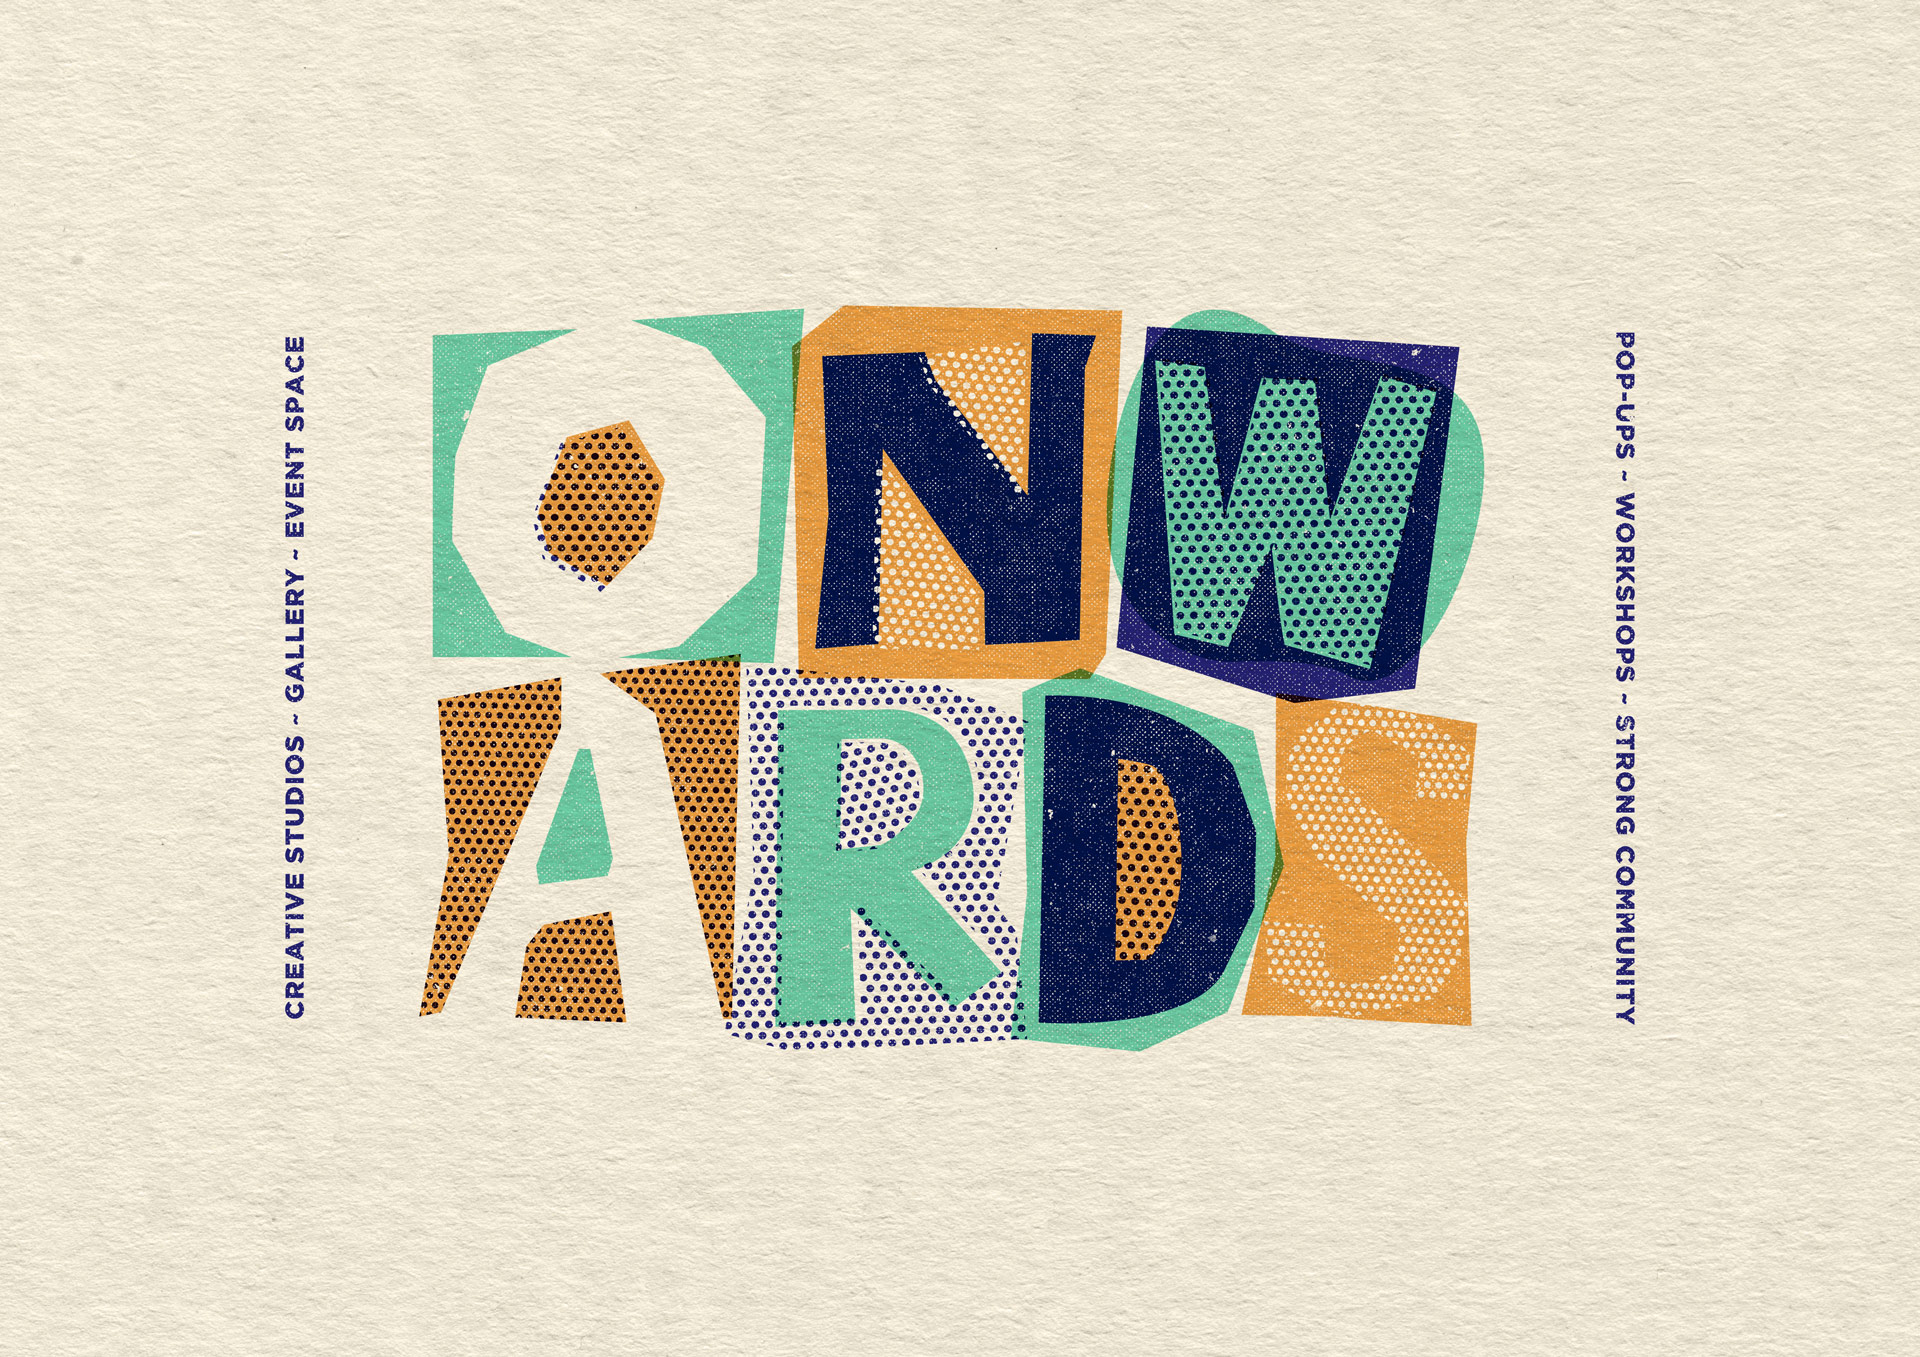 ONW0012-Onward-Website-Landscape-2019_v2.jpg